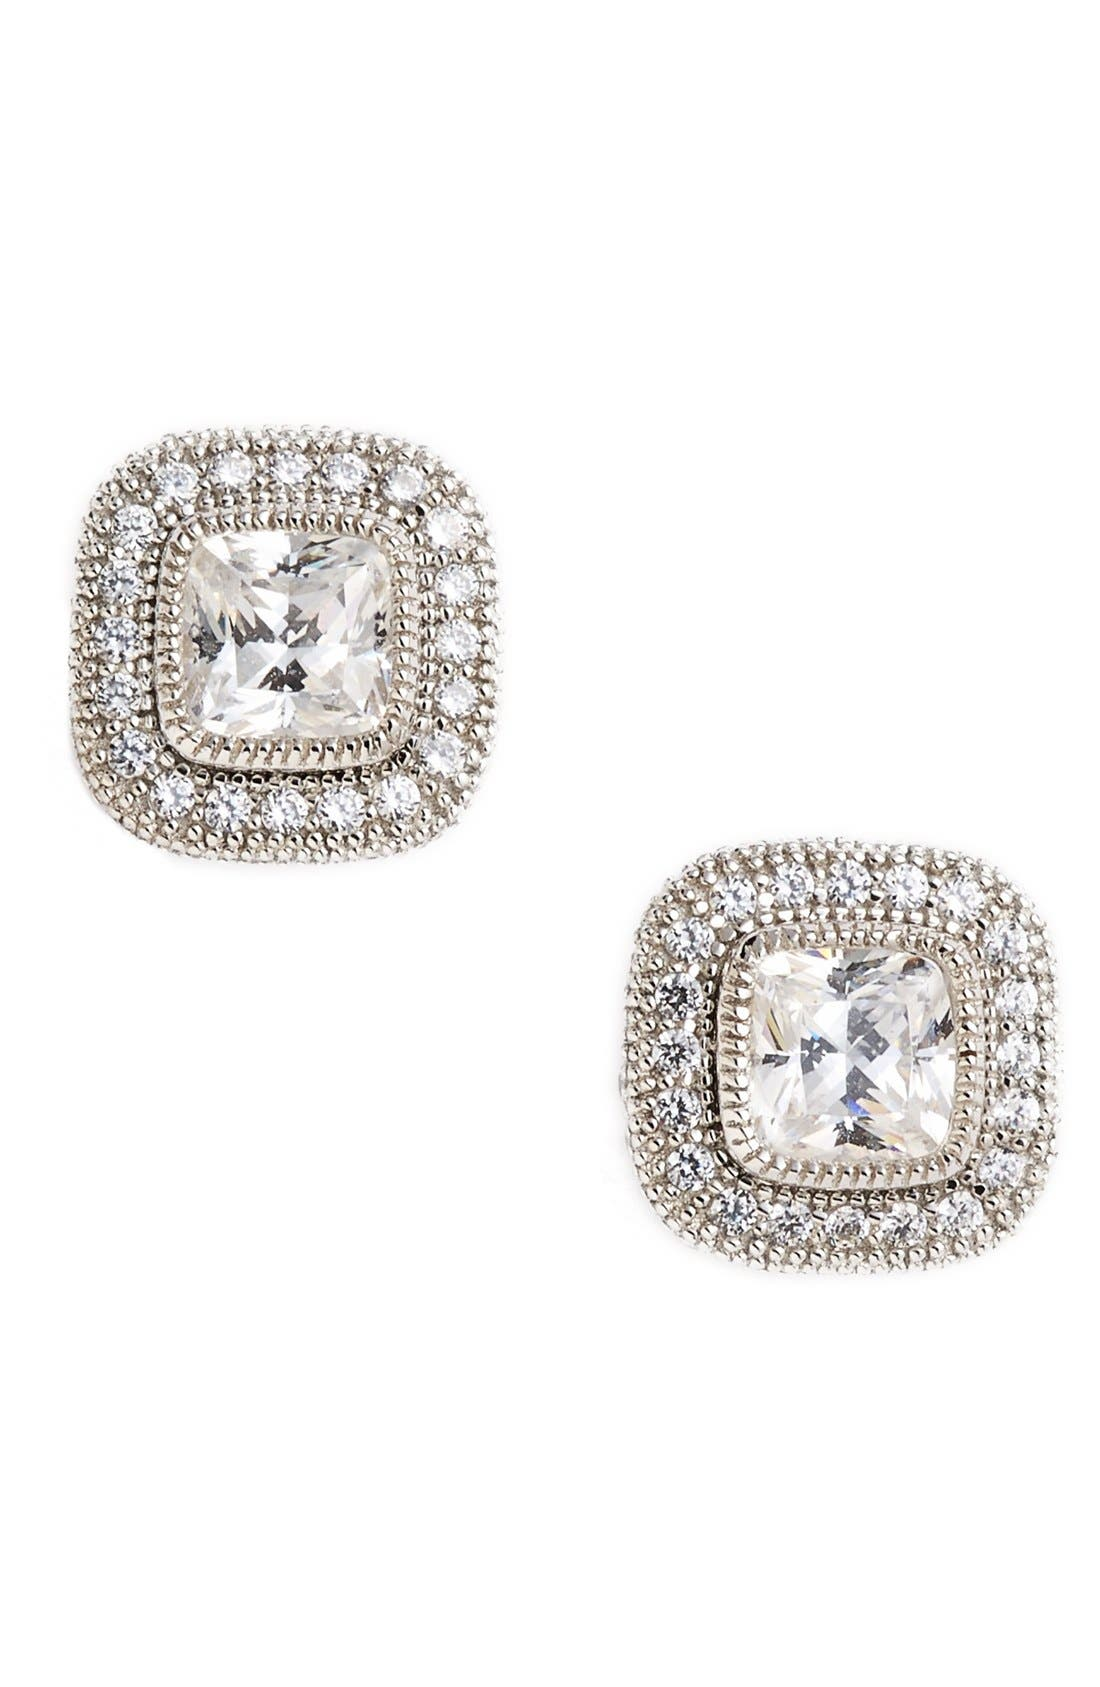 Lafonn 'Lassaire' Square Stud Earrings